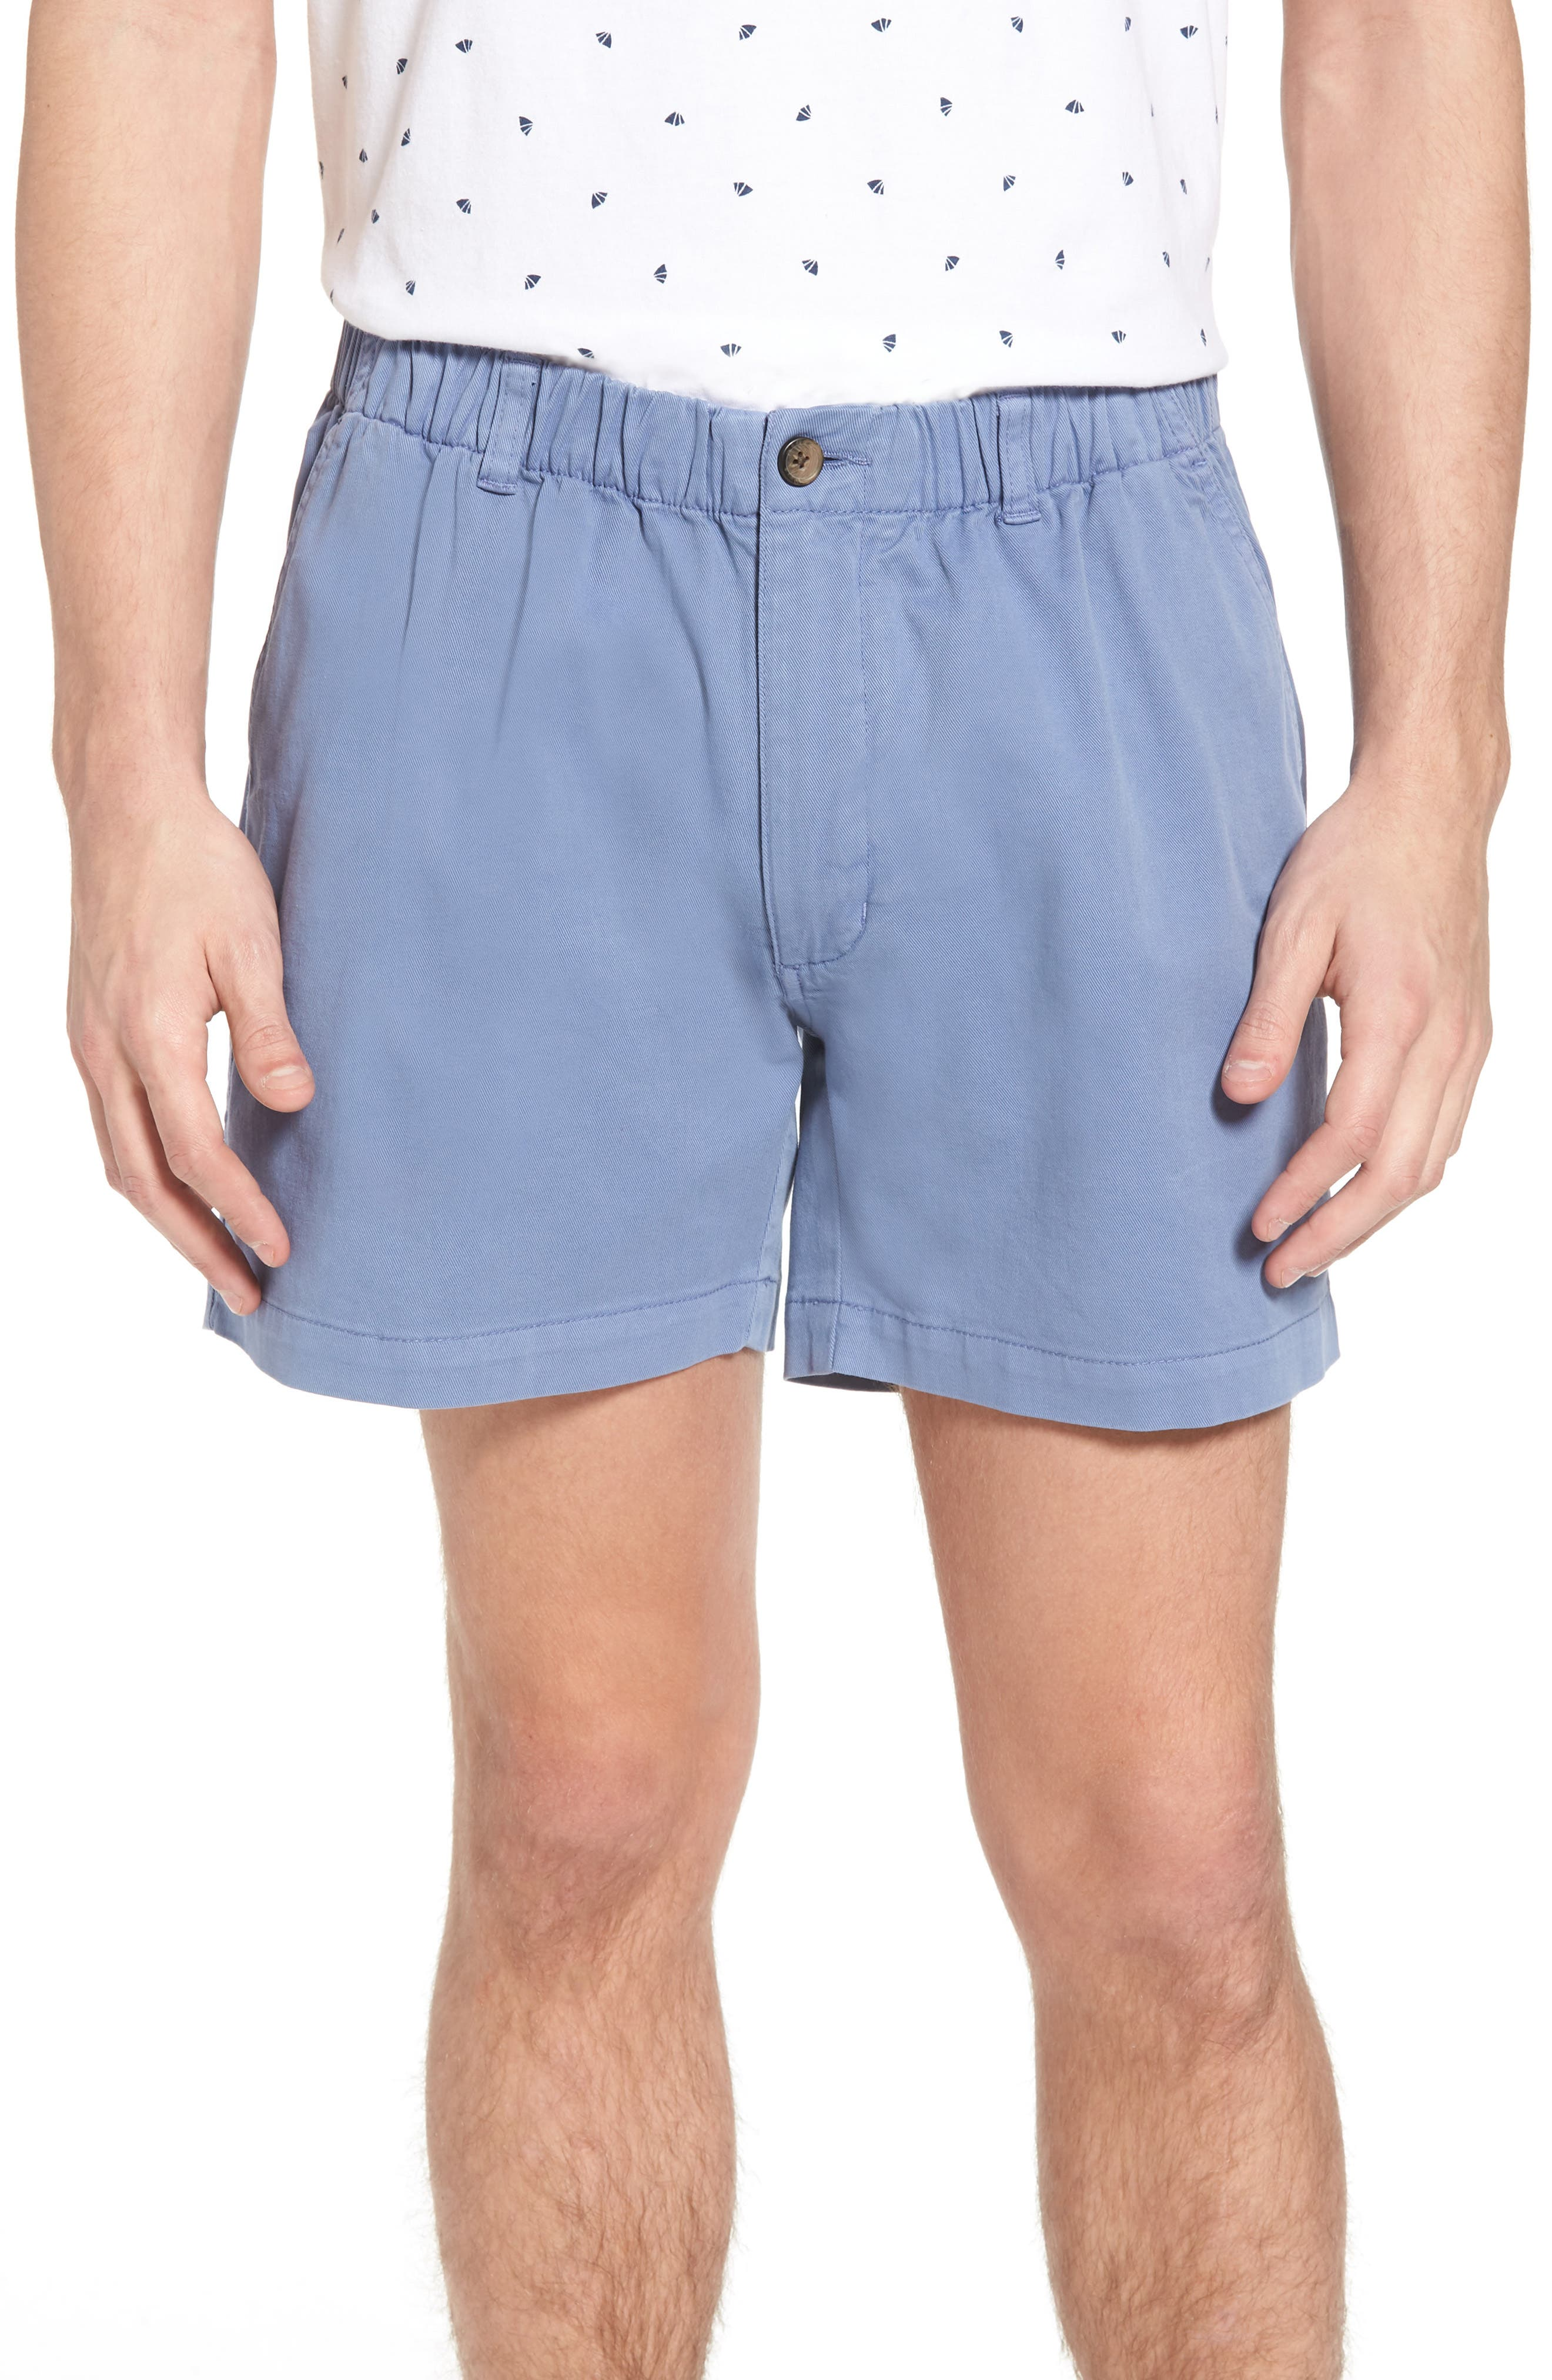 1940s Men's Fashion, Clothing Styles Mens Vintage 1946 Snappers Elastic Waist 5.5 Inch Stretch Shorts Size XX-Large - Blue $55.00 AT vintagedancer.com